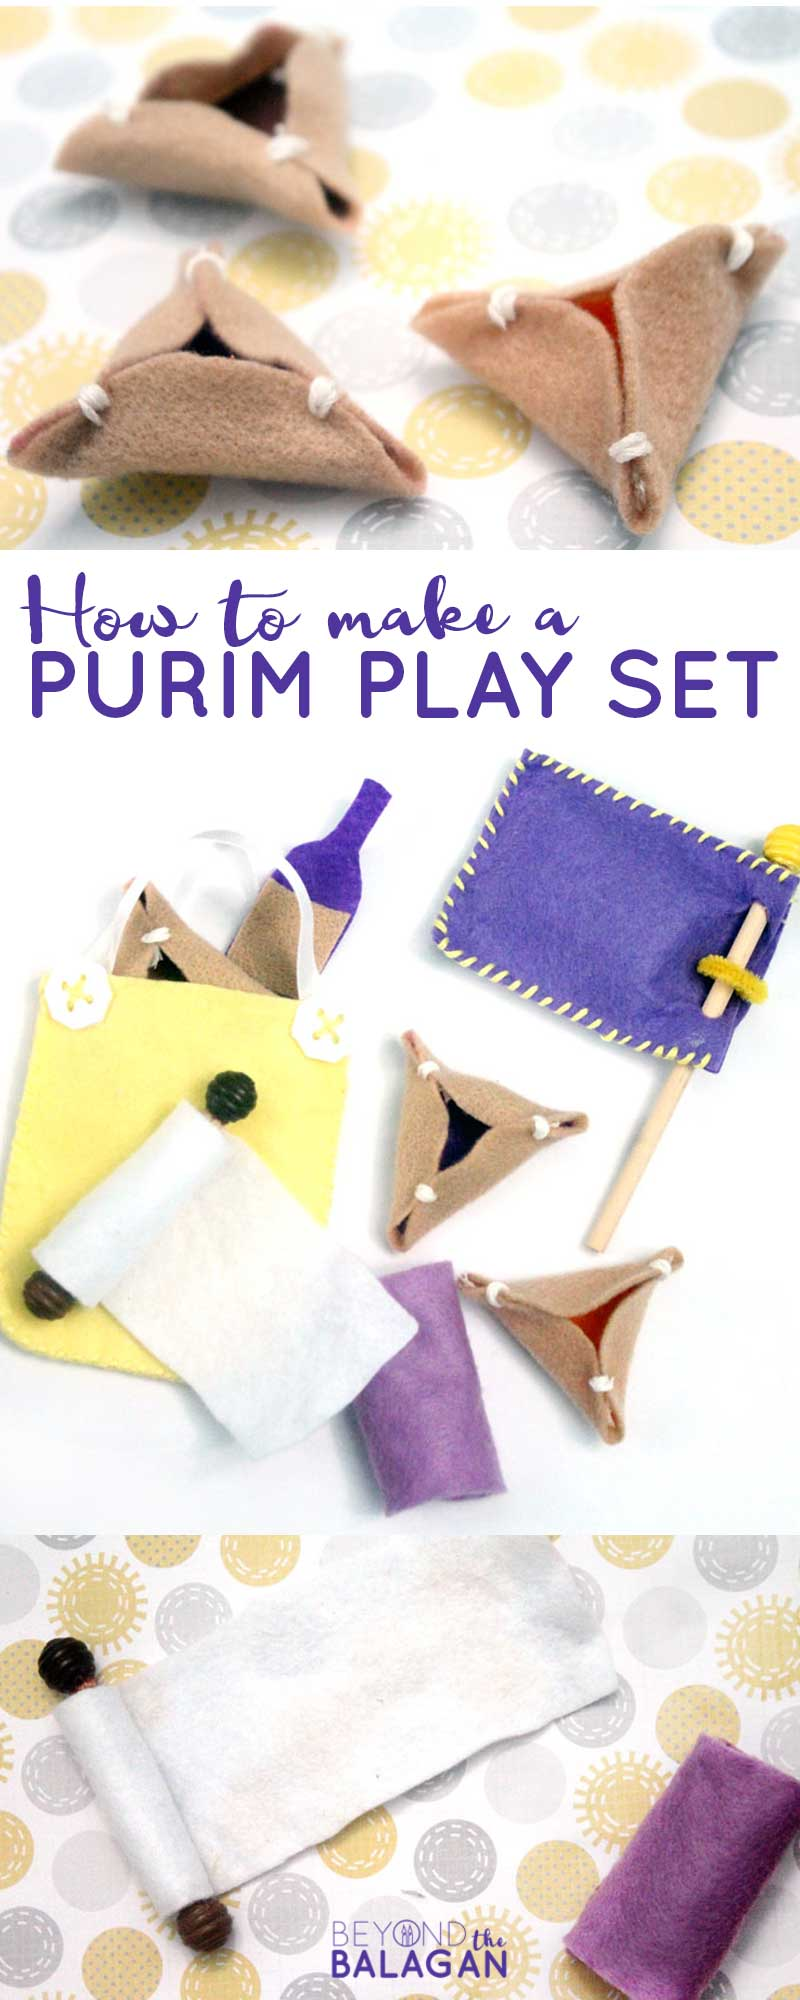 This adorable felt purim toy is easy to make yourself! Includes DIY pretend hamantashen and more, perfect craft for the Jewish holiday of Purim. #purim #hamantashen #diytoy